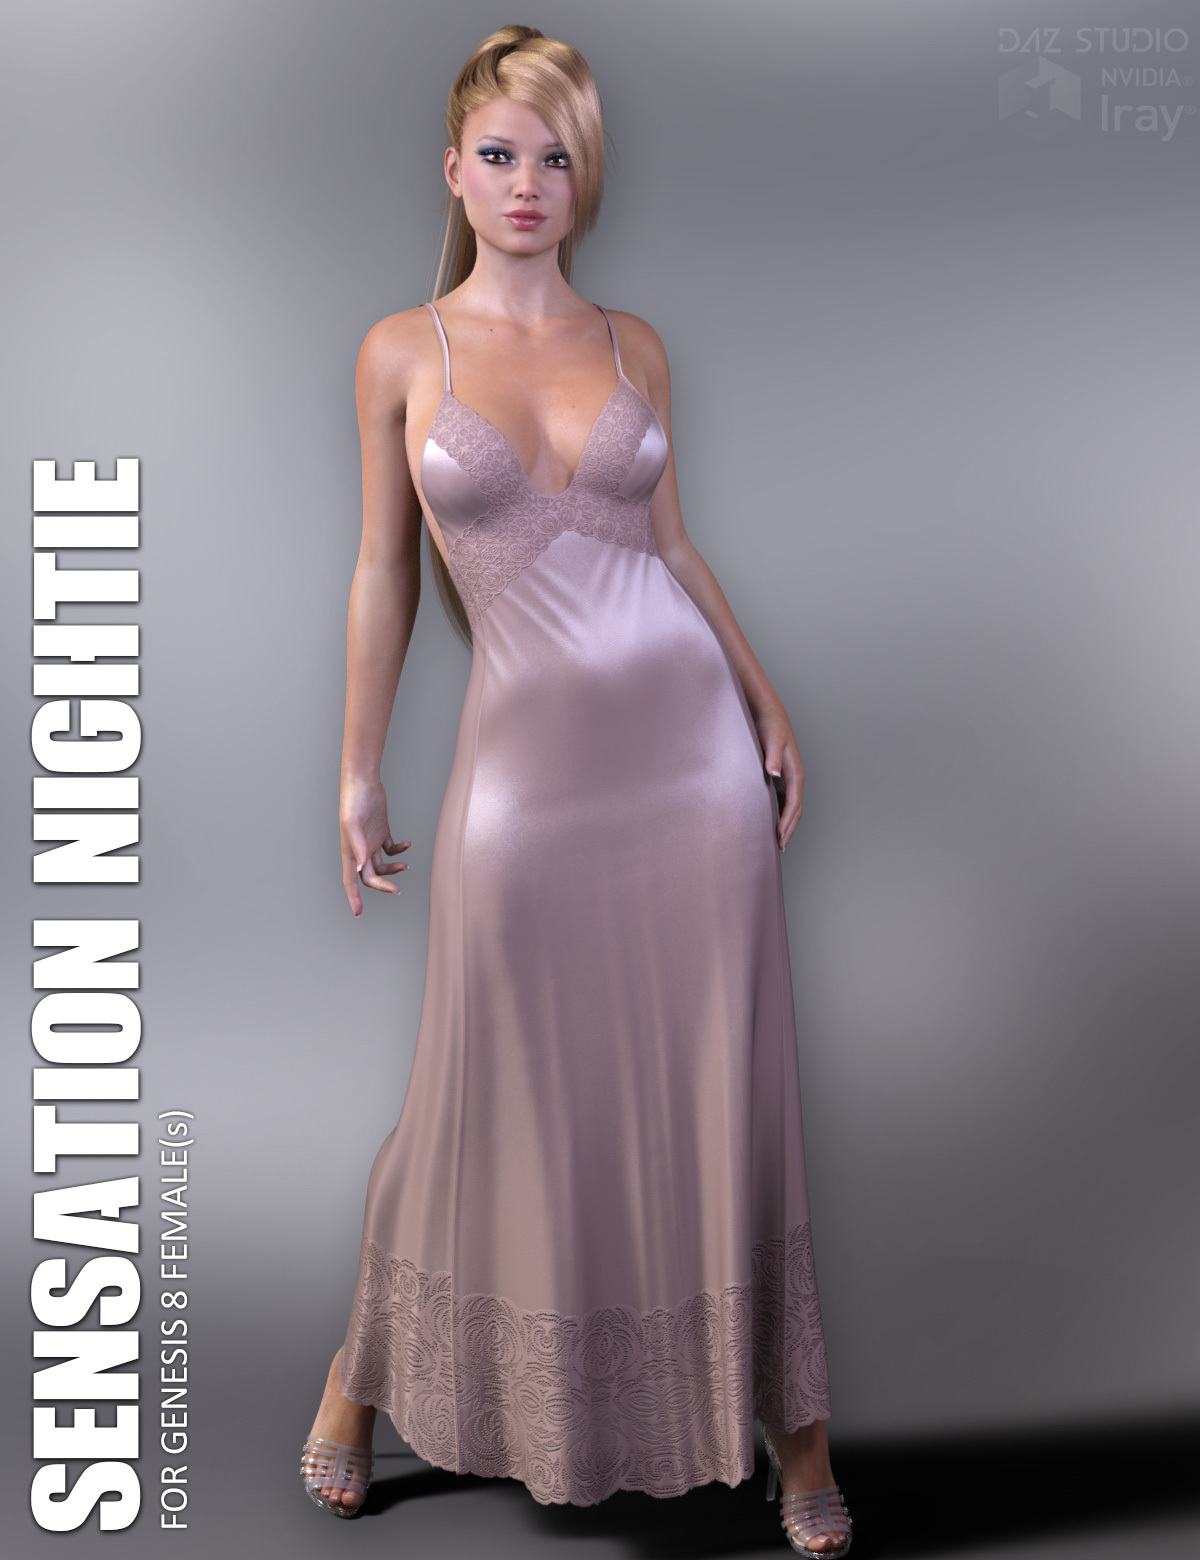 dForce Sensation Nightie for Genesis 8 Females by lilflame